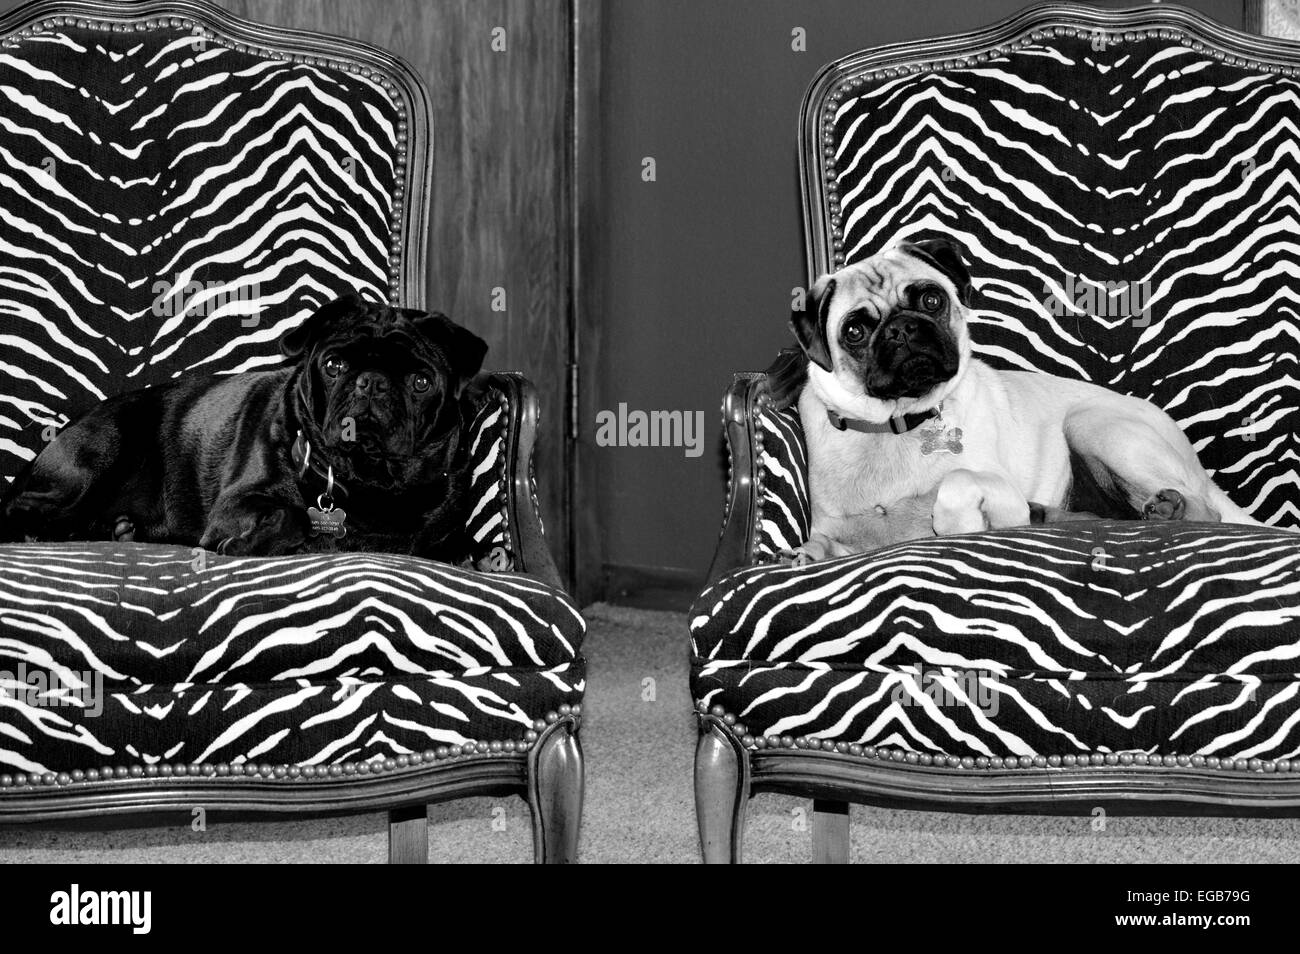 A black and fawn pug sit upon their thrones. - Stock Image